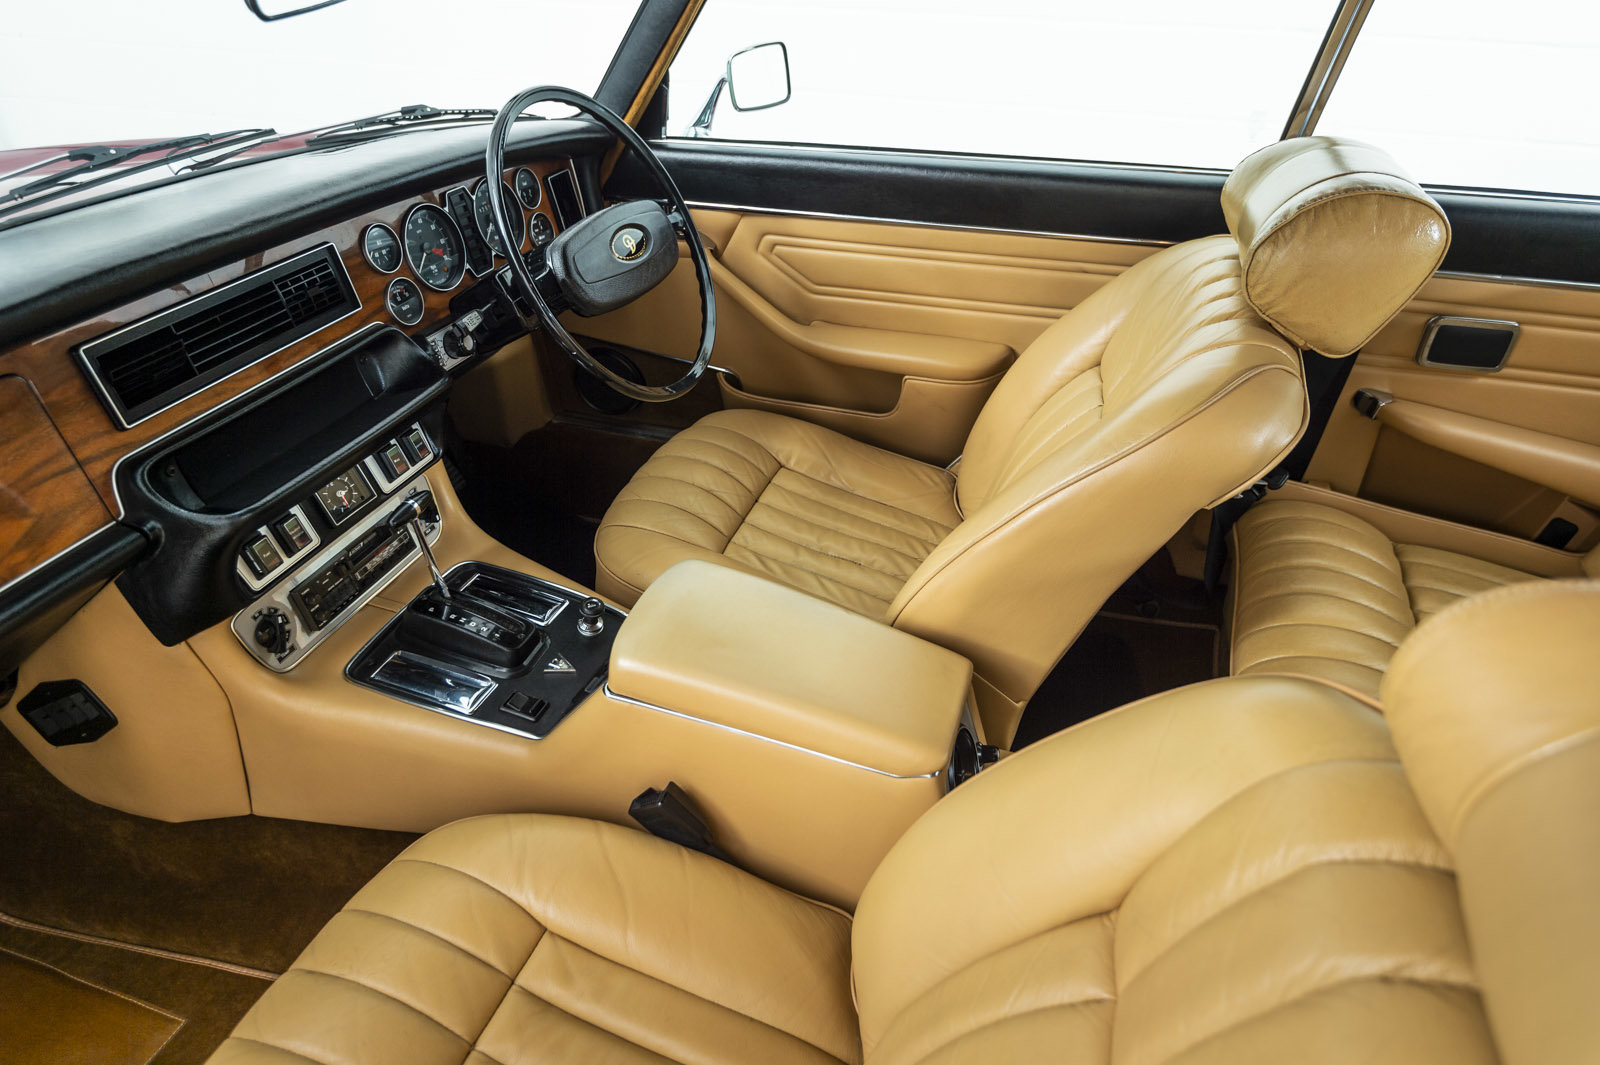 1977 DAMILER DOUBLE SIX COUPE 5.3 V12 - 33,487 mls For Sale (picture 4 of 6)